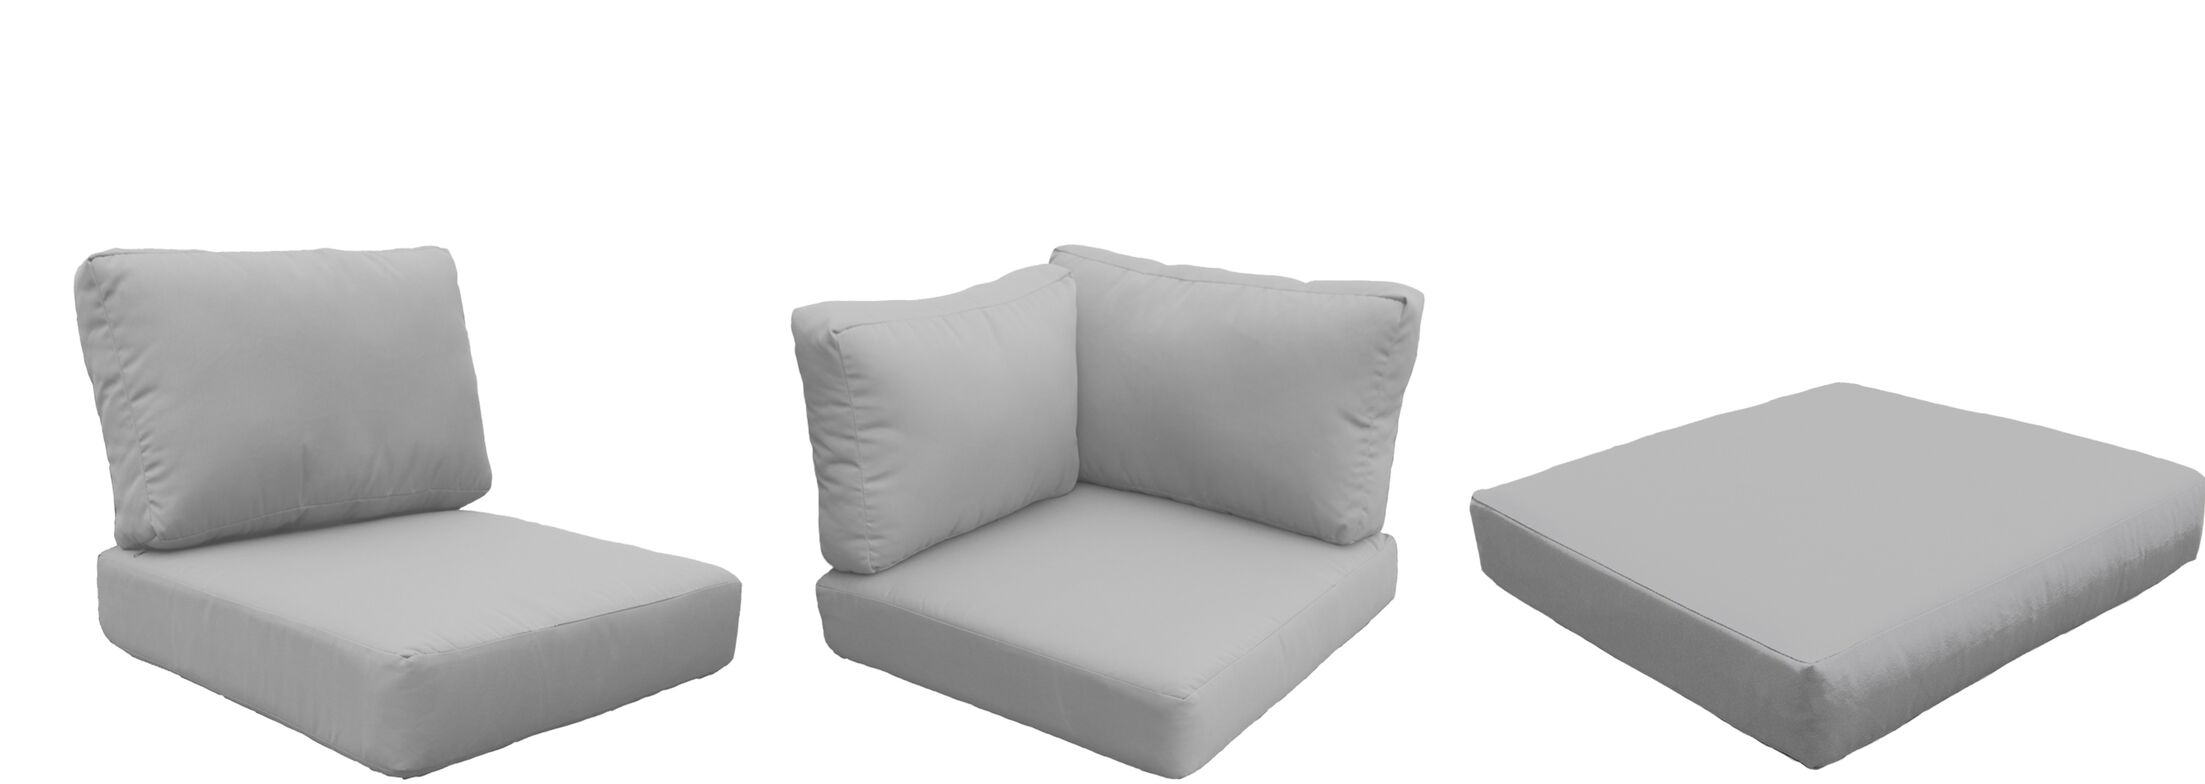 Coast 23 Piece Outdoor�Cushion Set Fabric: Gray